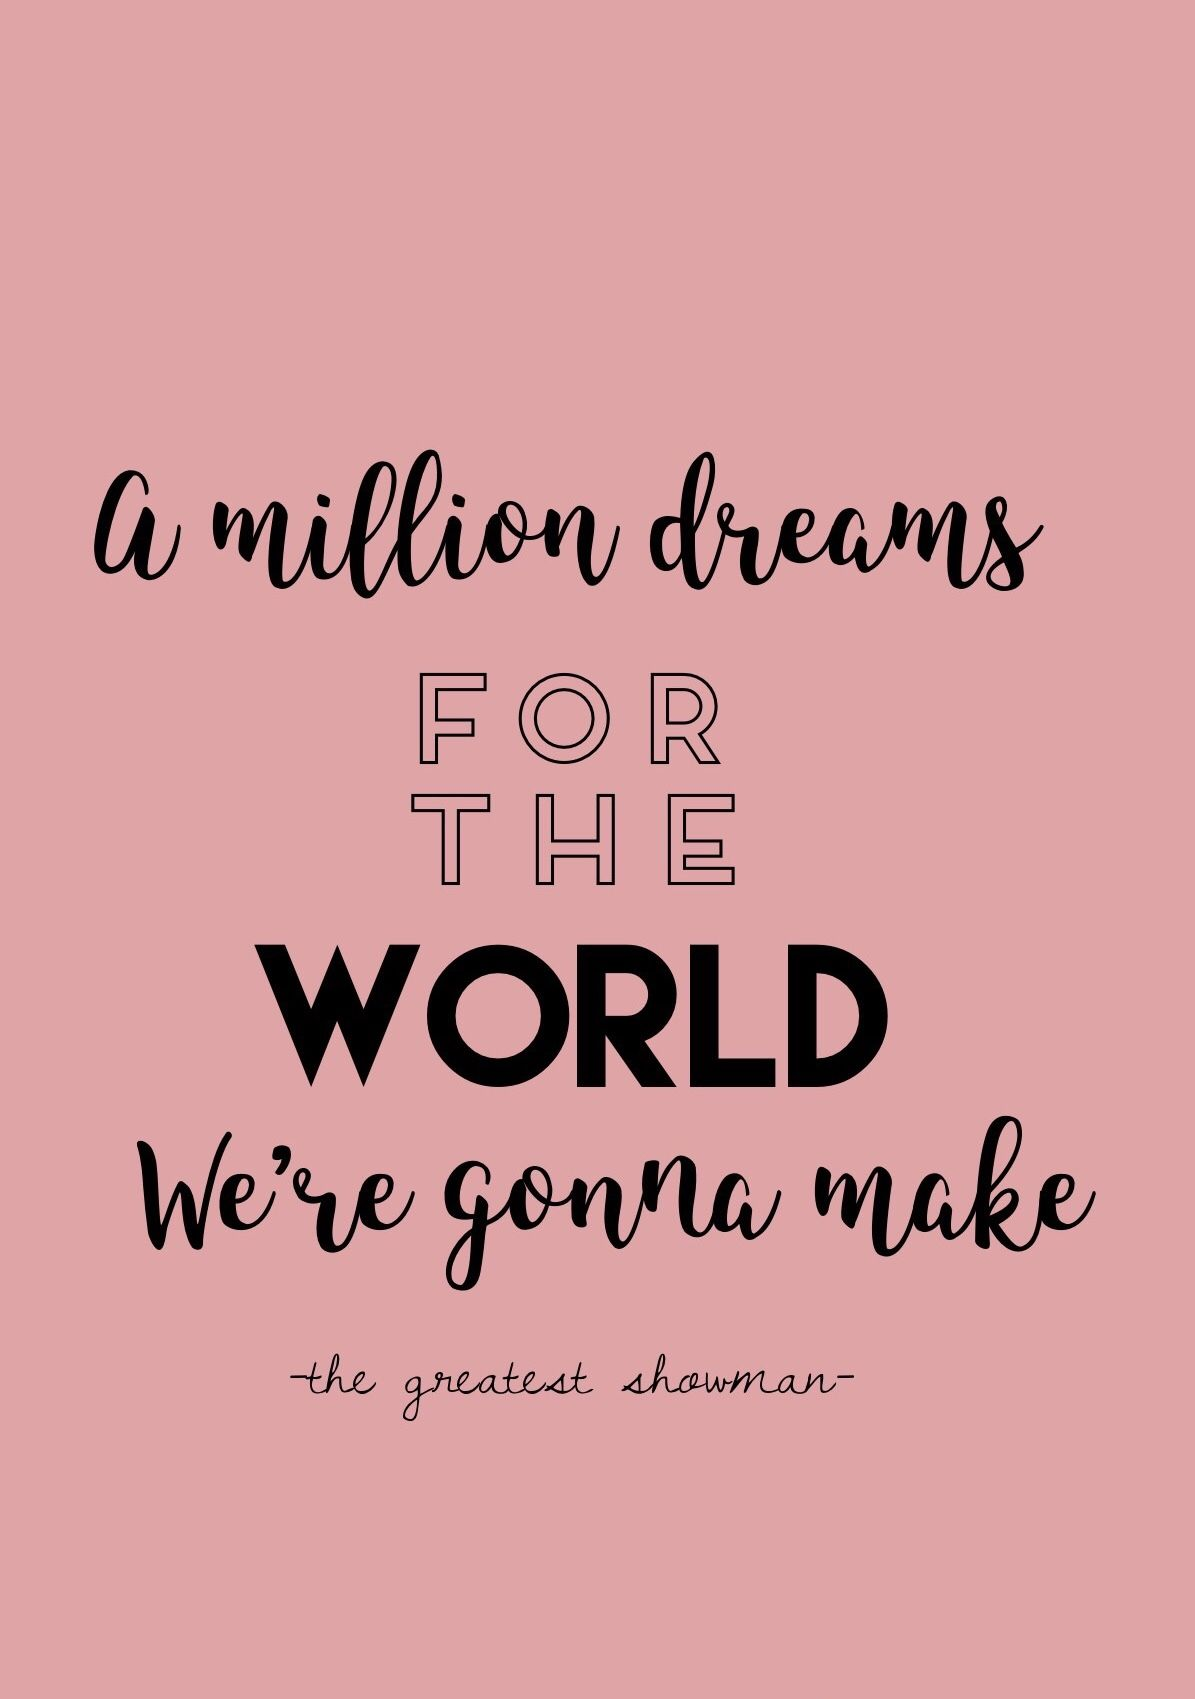 The Greatest Showman Wallpaper Milliondreams Hujackman Thegreateatshowman Wallpaper Pinterest Zacefron Zendaya The Greatest Showman Greatful Song Quotes